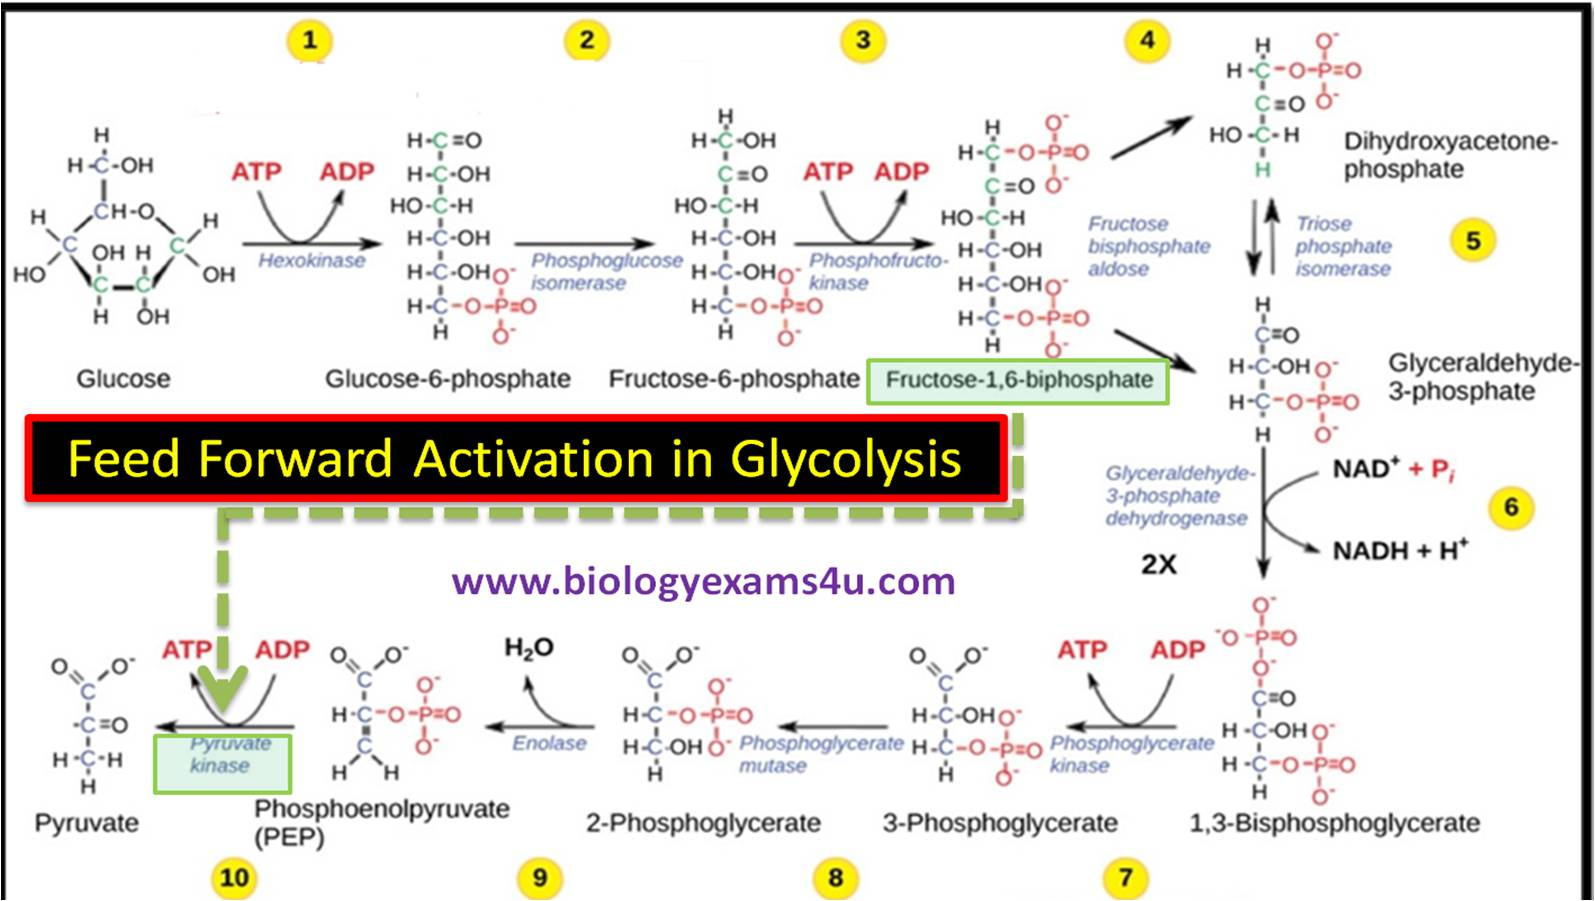 feed forward activation of enzymes in glycolysis